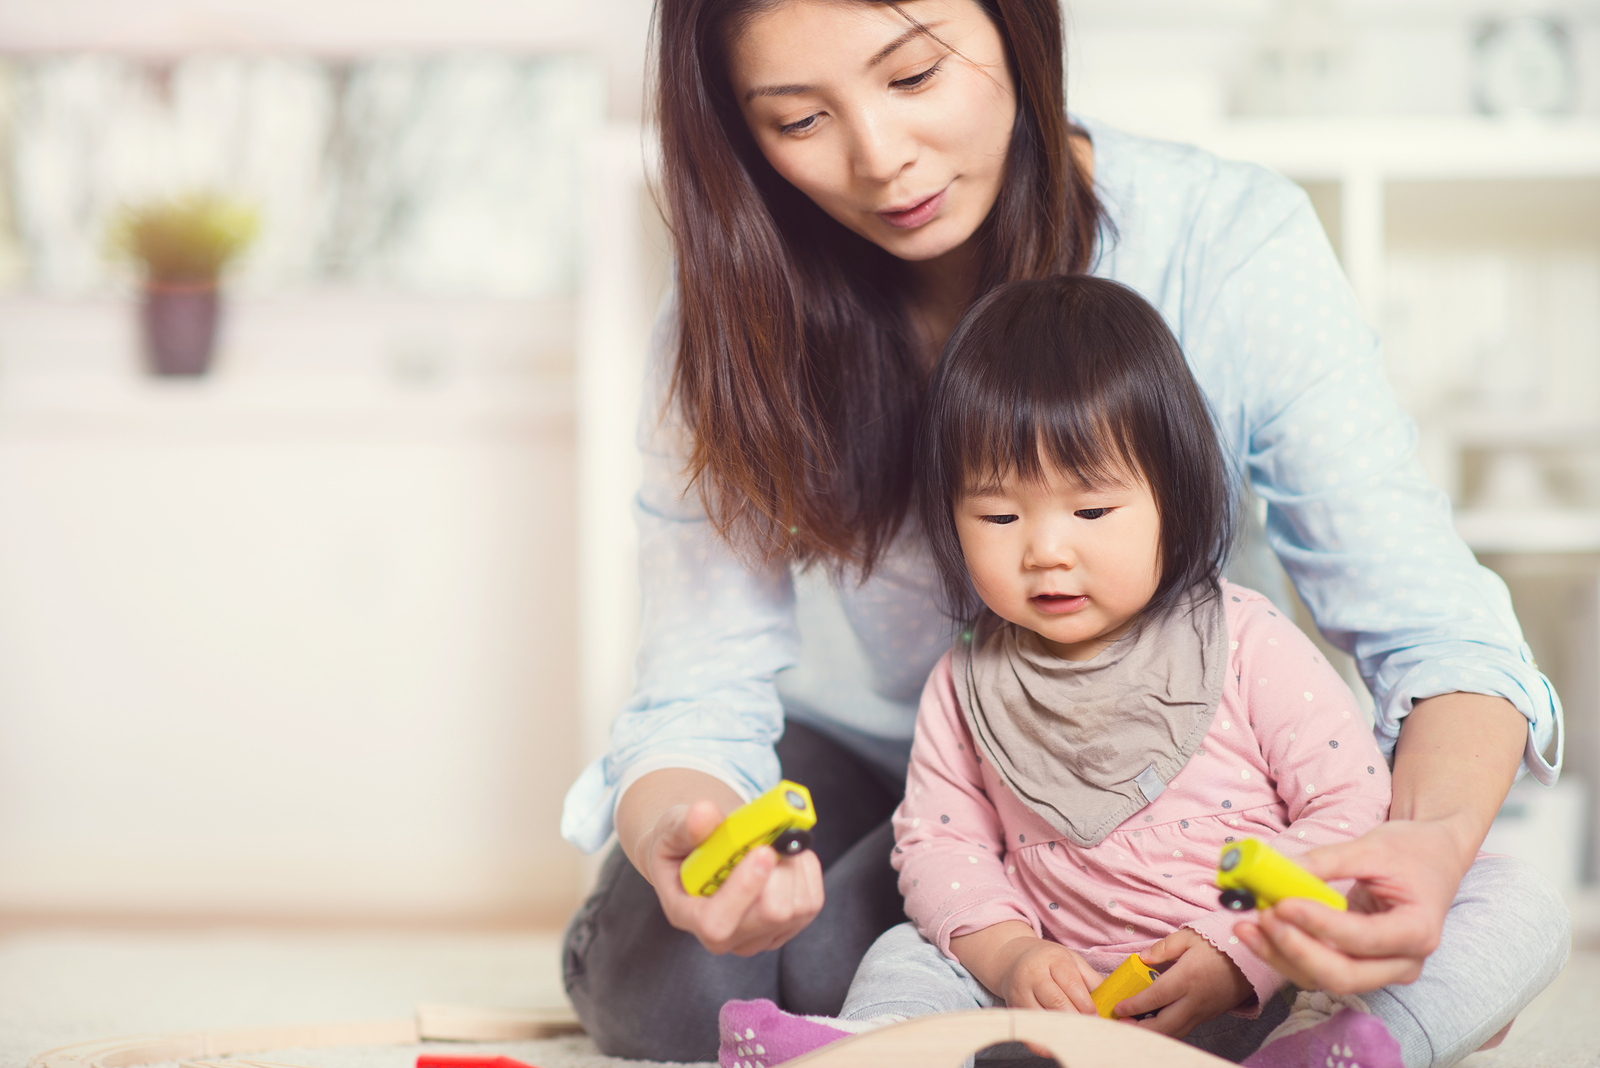 Japan's birth rate is on a decline, leaving government officials to worry about how to 'repopulate' the country.